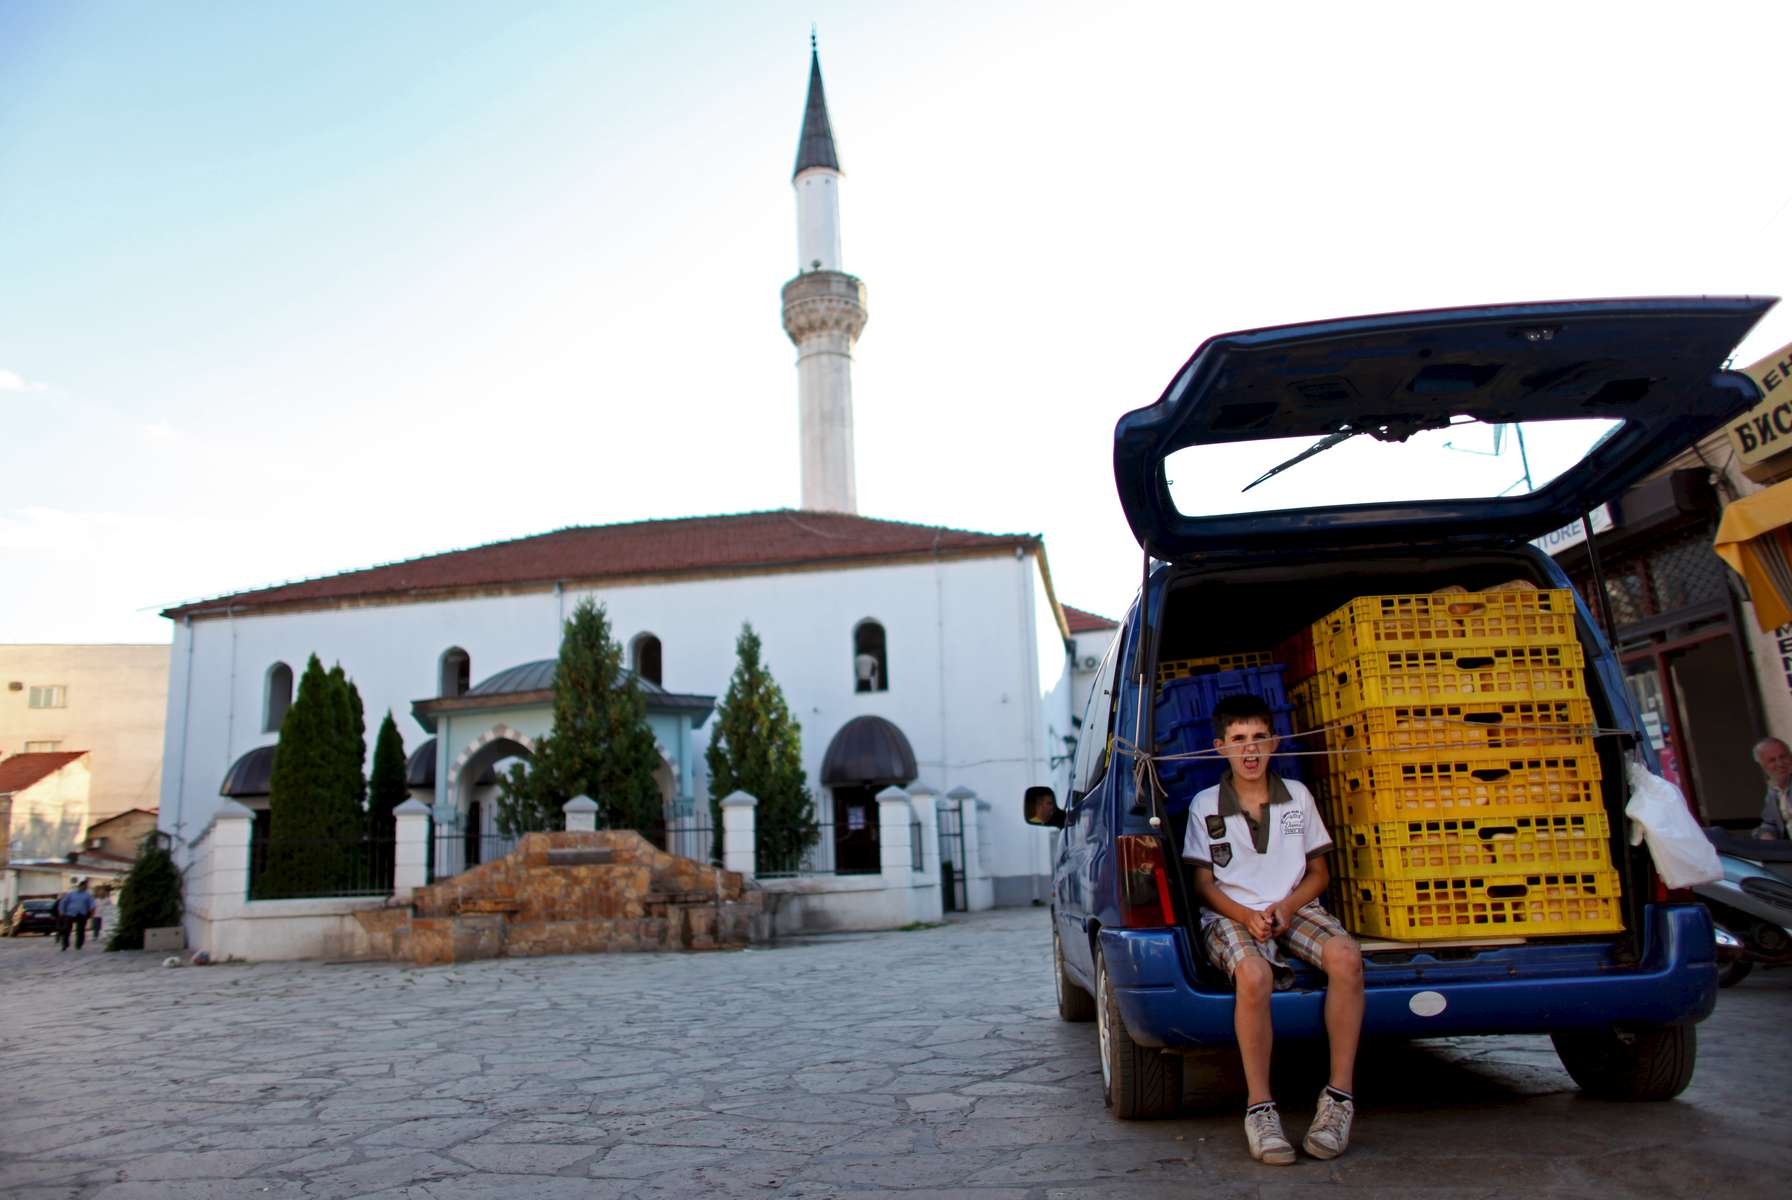 A boy plays with strings holding crates inside a car near the Murat Pasha mosque in the Old City portion of Skopje, Macedonia on Sunday, September 05, 2010.